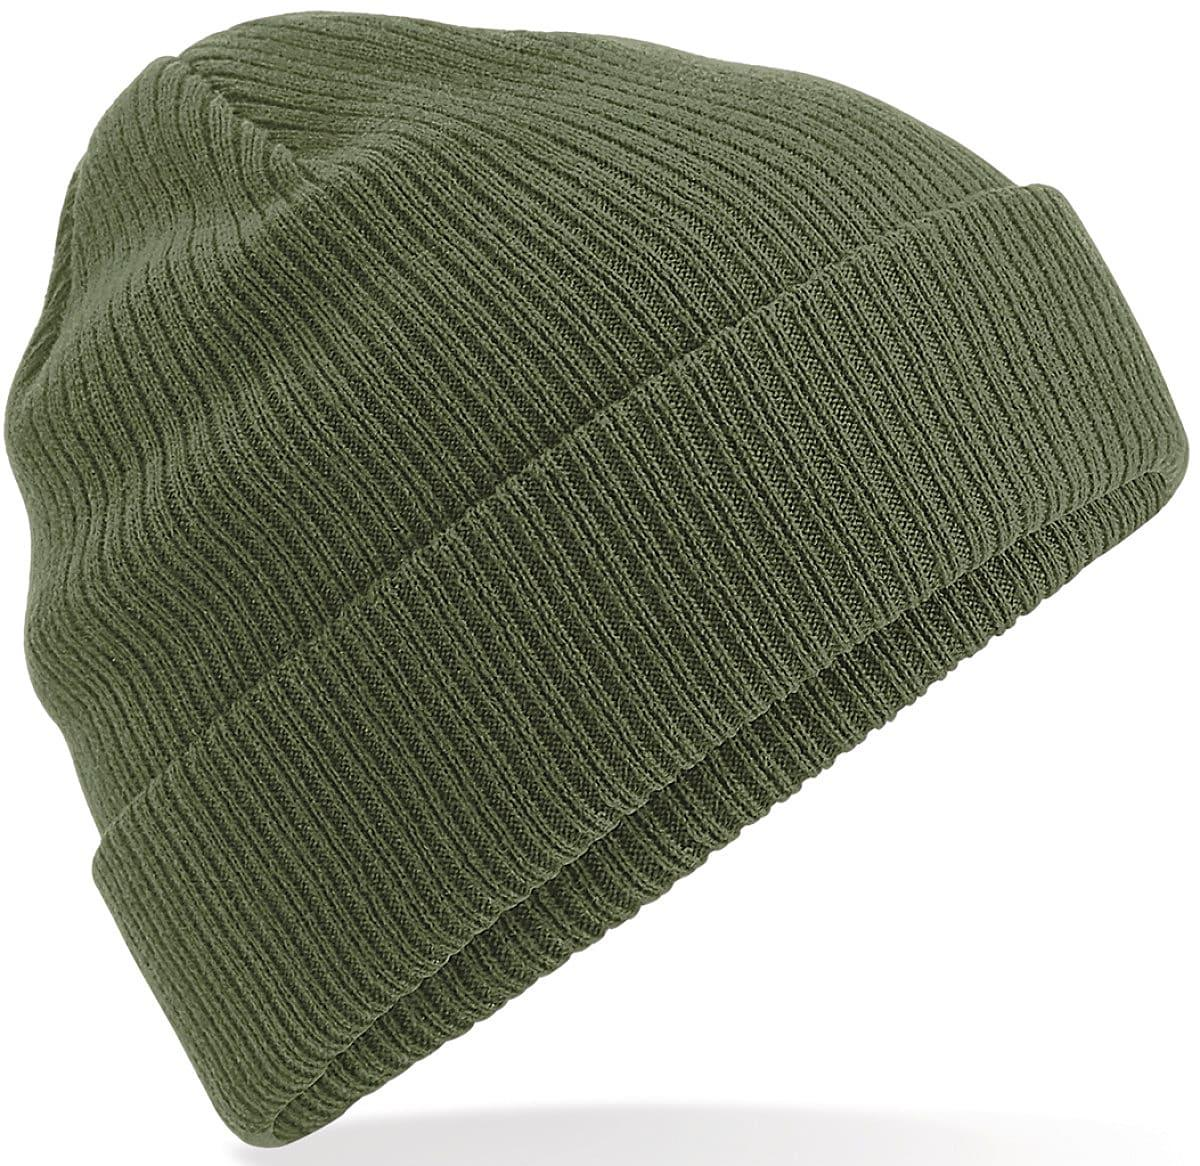 Beechfield Organic Cotton Beanie Hat in Olive Green (Product Code: B50)